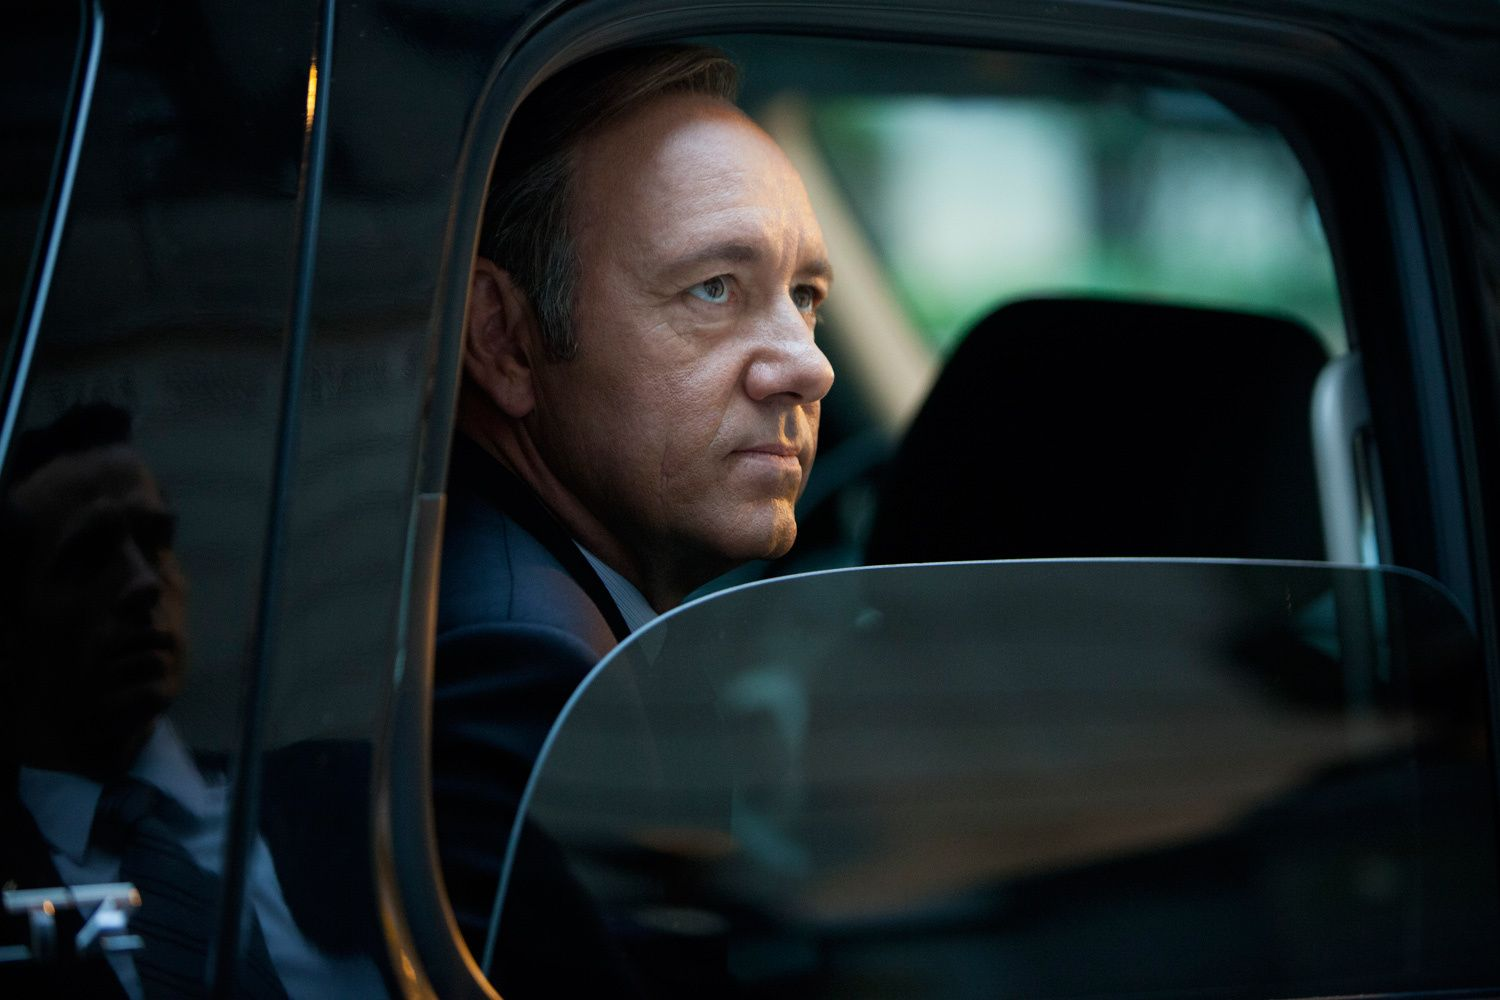 Kevin Spacey as Francis Underwood